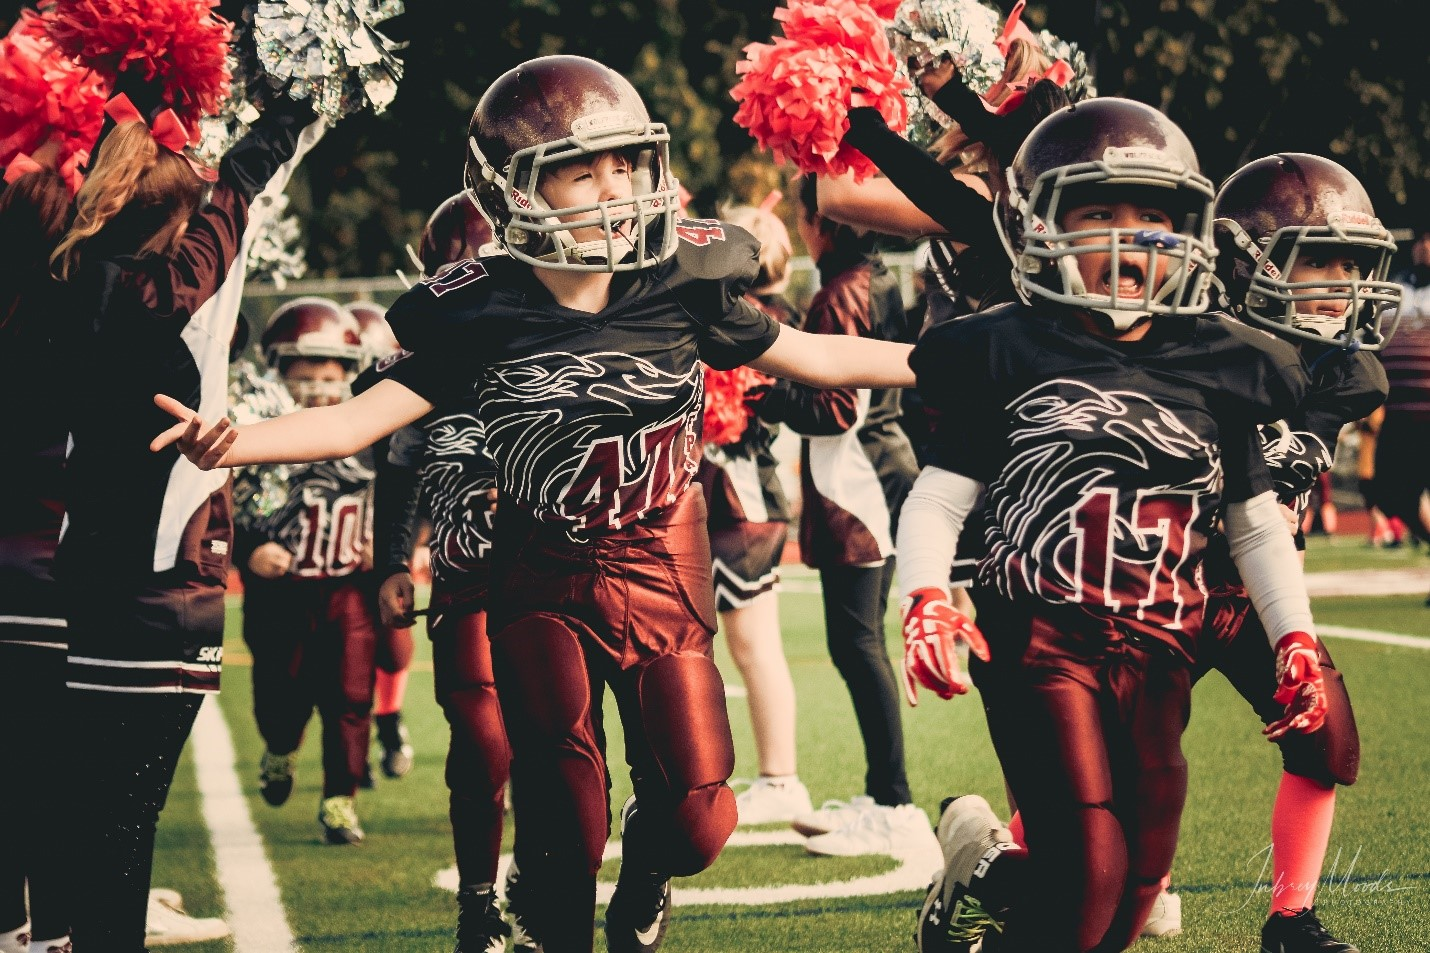 Youth sports childrens football team wearing black and red jerseys a93bc5ff7